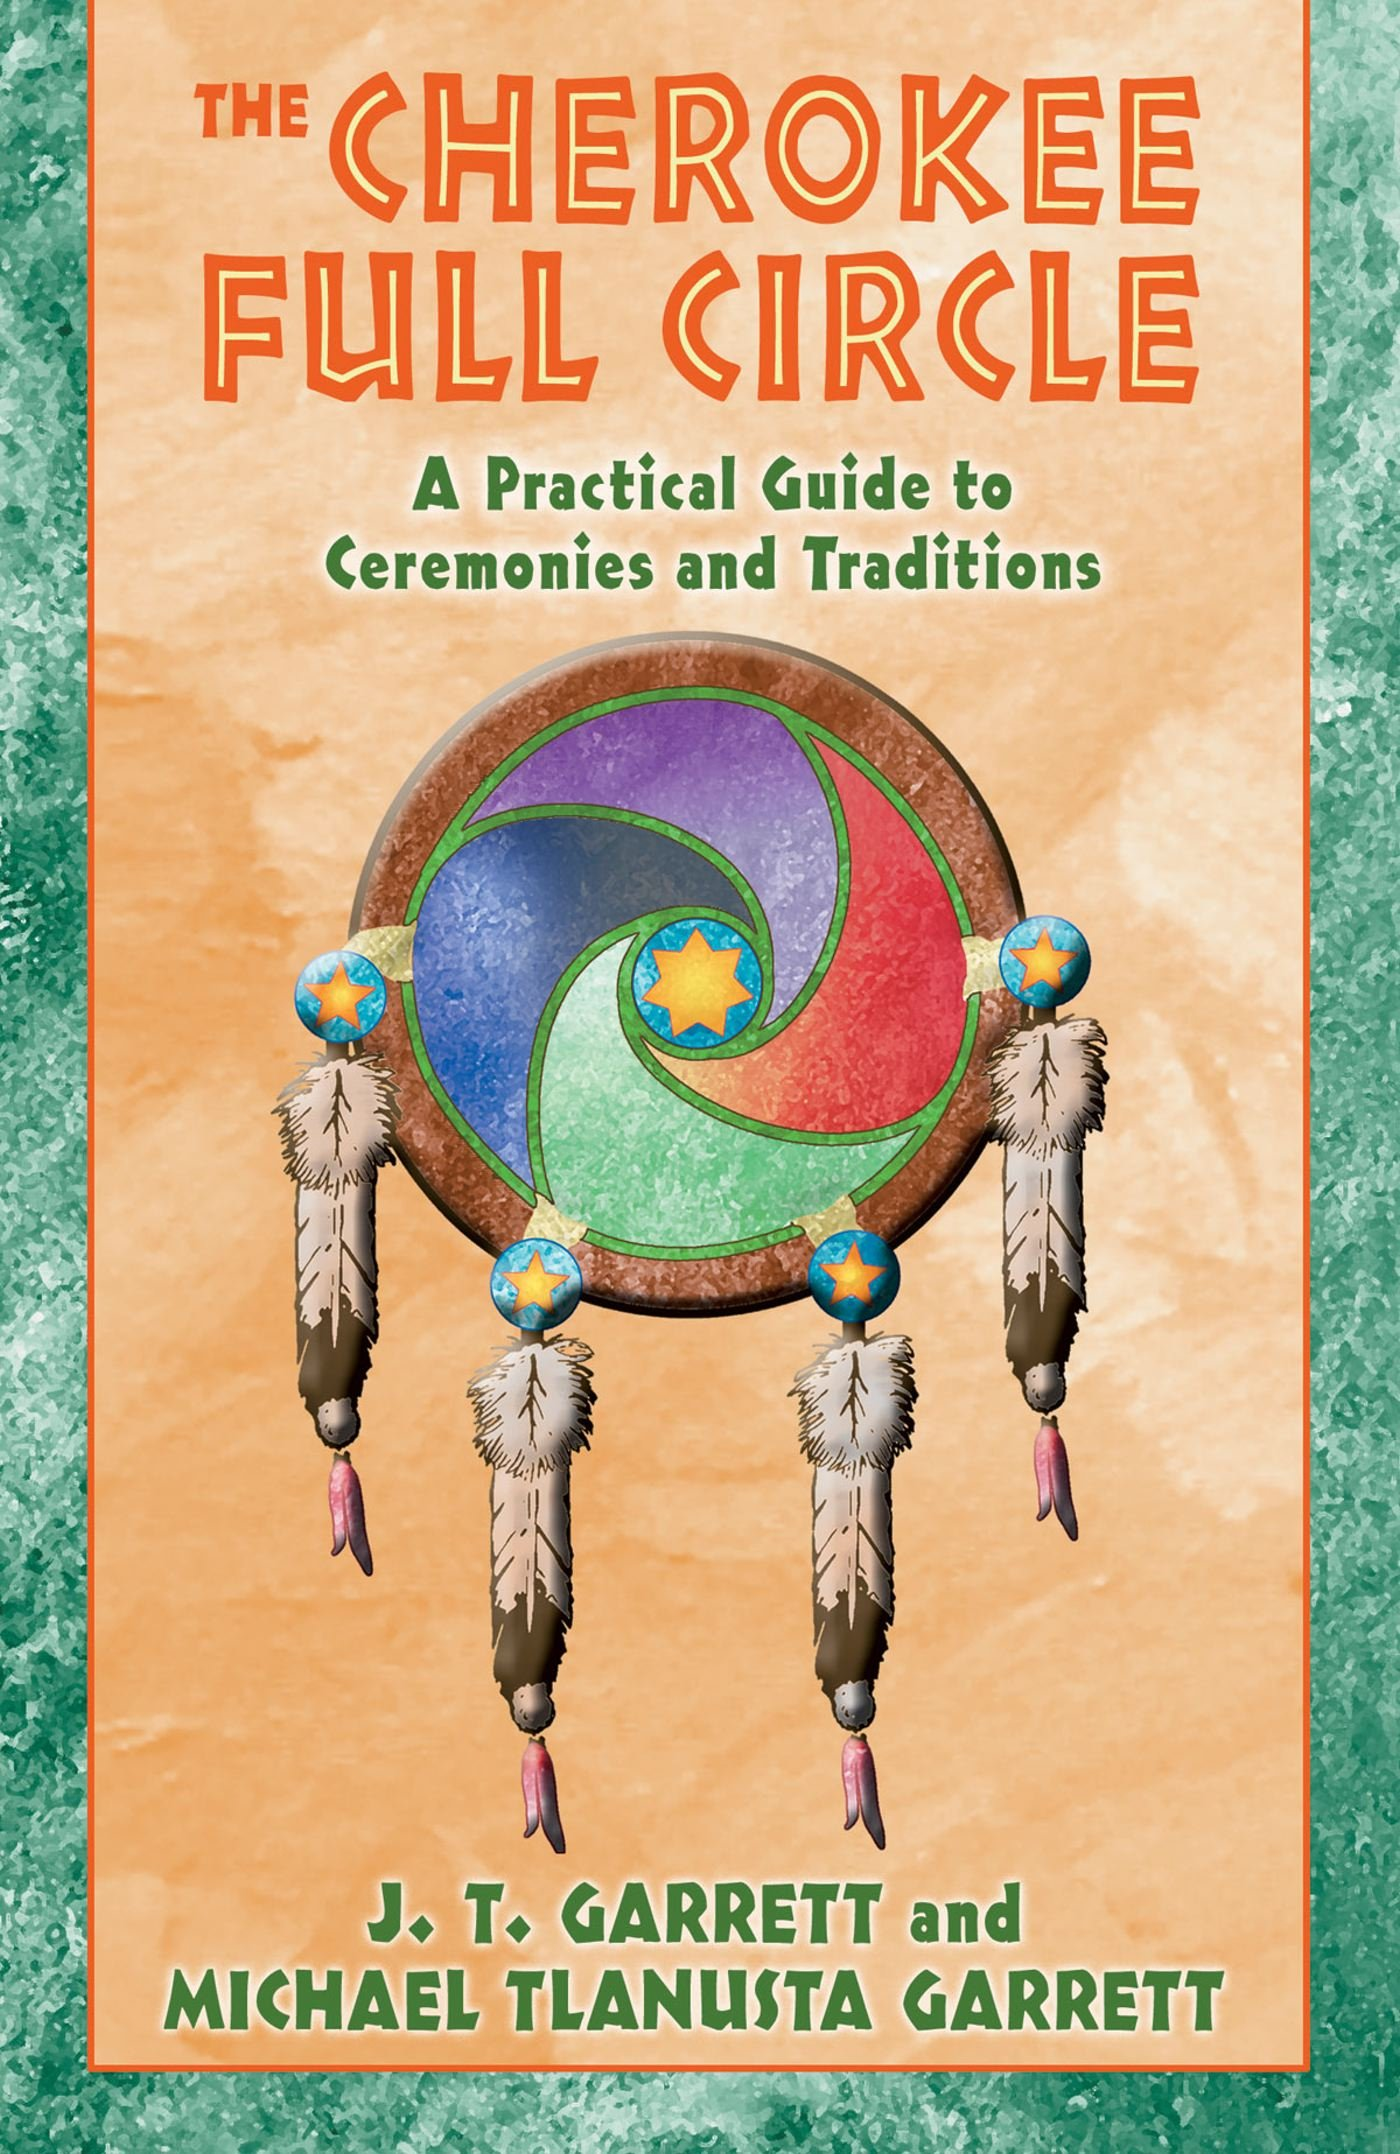 The cherokee full circle a practical guide to sacred ceremonies and the cherokee full circle a practical guide to sacred ceremonies and traditions j t garrett michael tlanusta garrett 9781879181953 amazon books fandeluxe Gallery